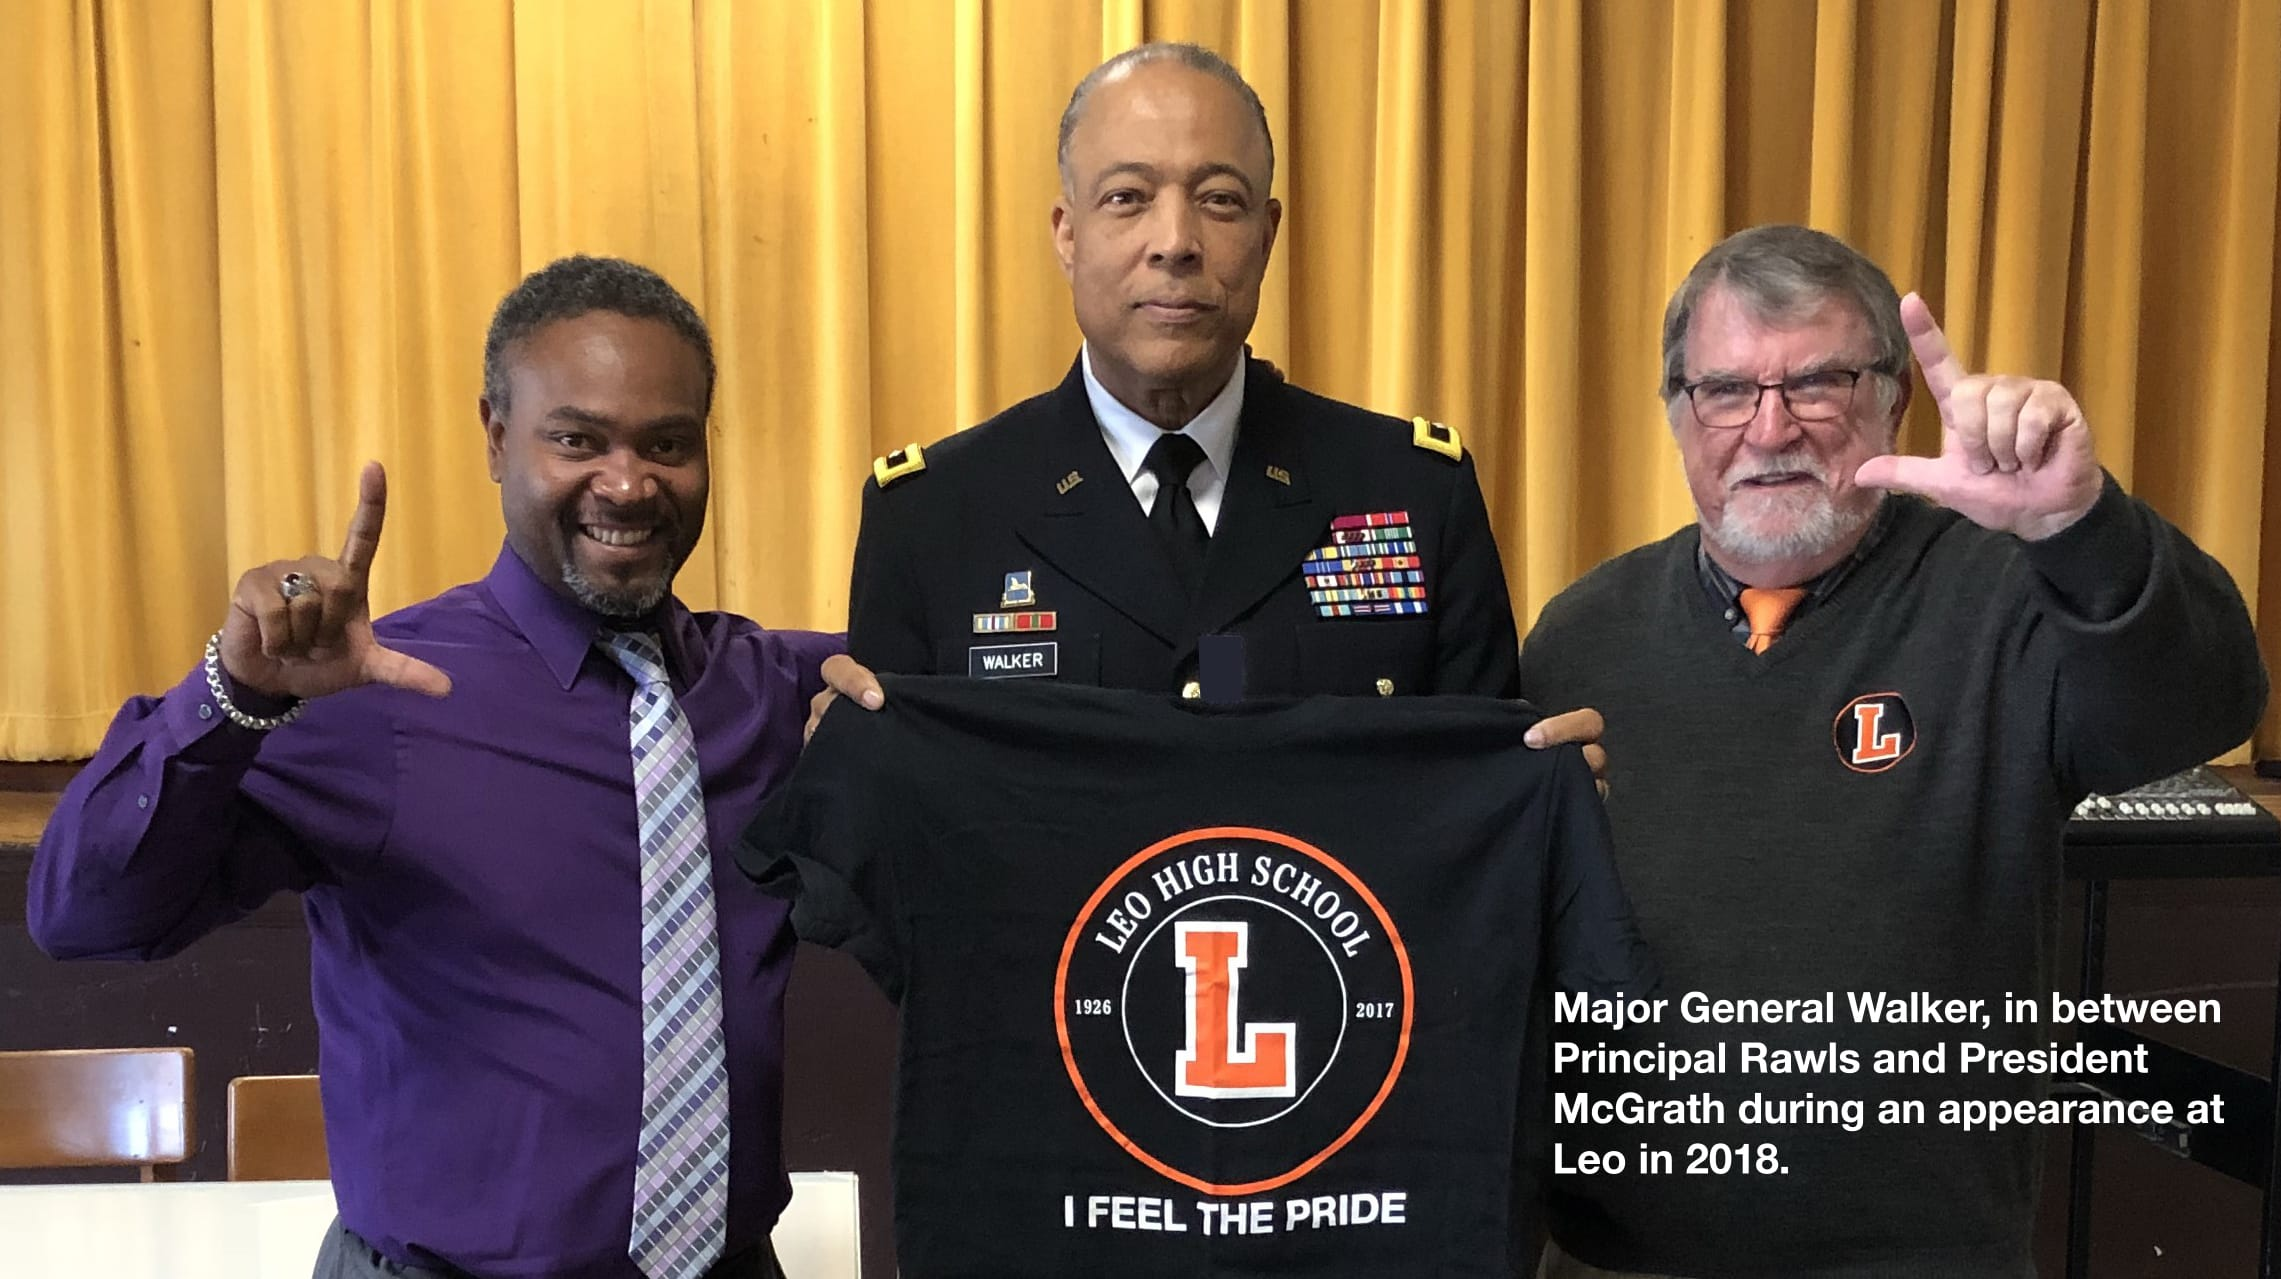 Major General Walker, in between Principal Rawls and President McGrath during an appearance at Leo in 2018